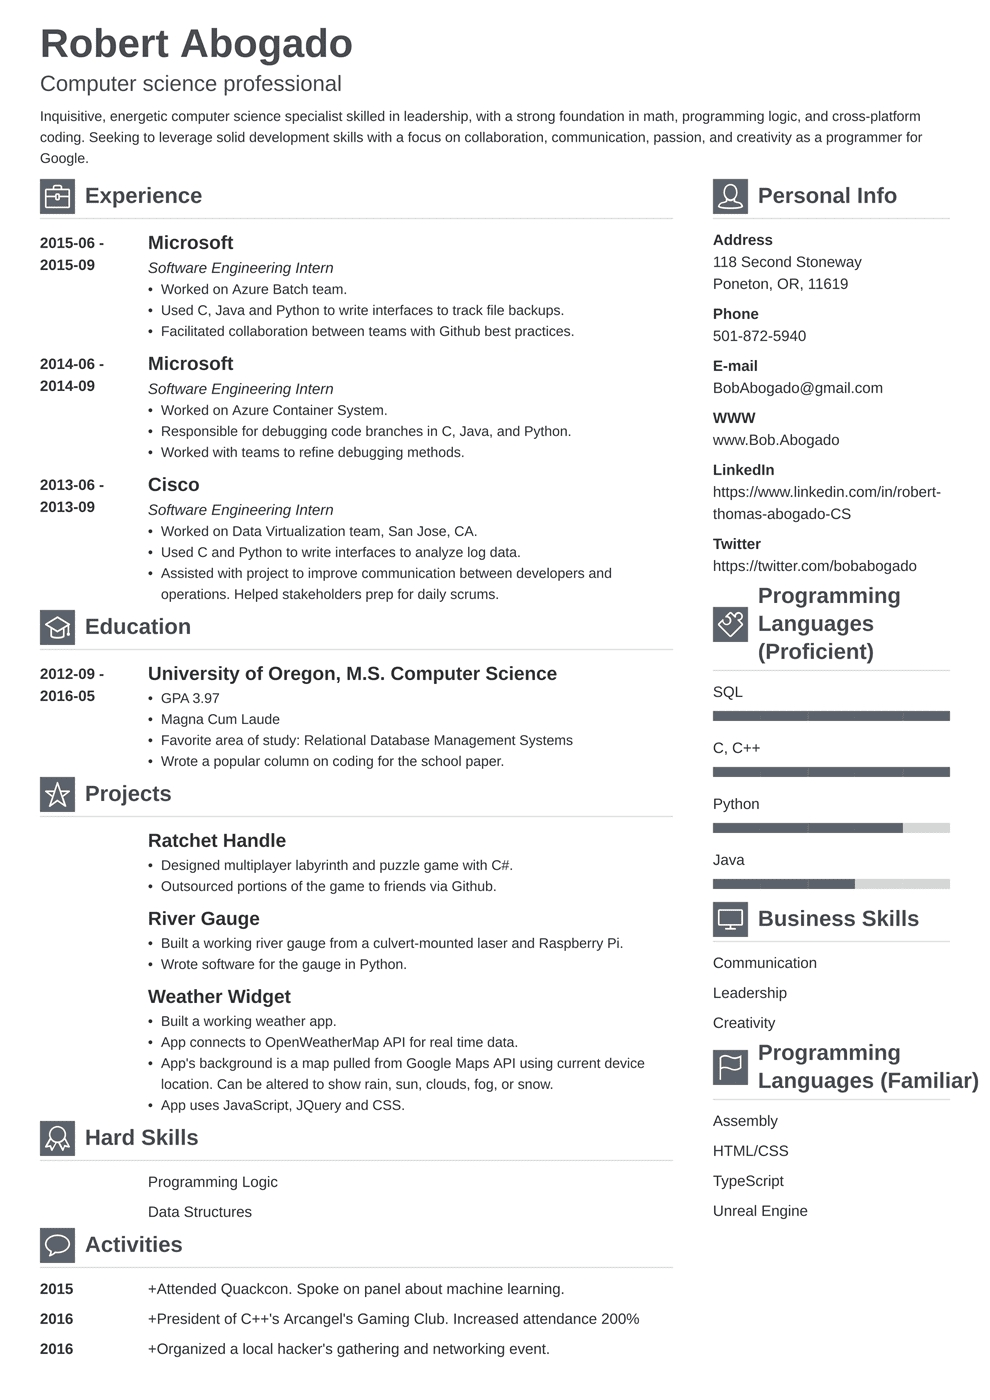 Computer Science (Cs) Resume Example (Guide & Template)